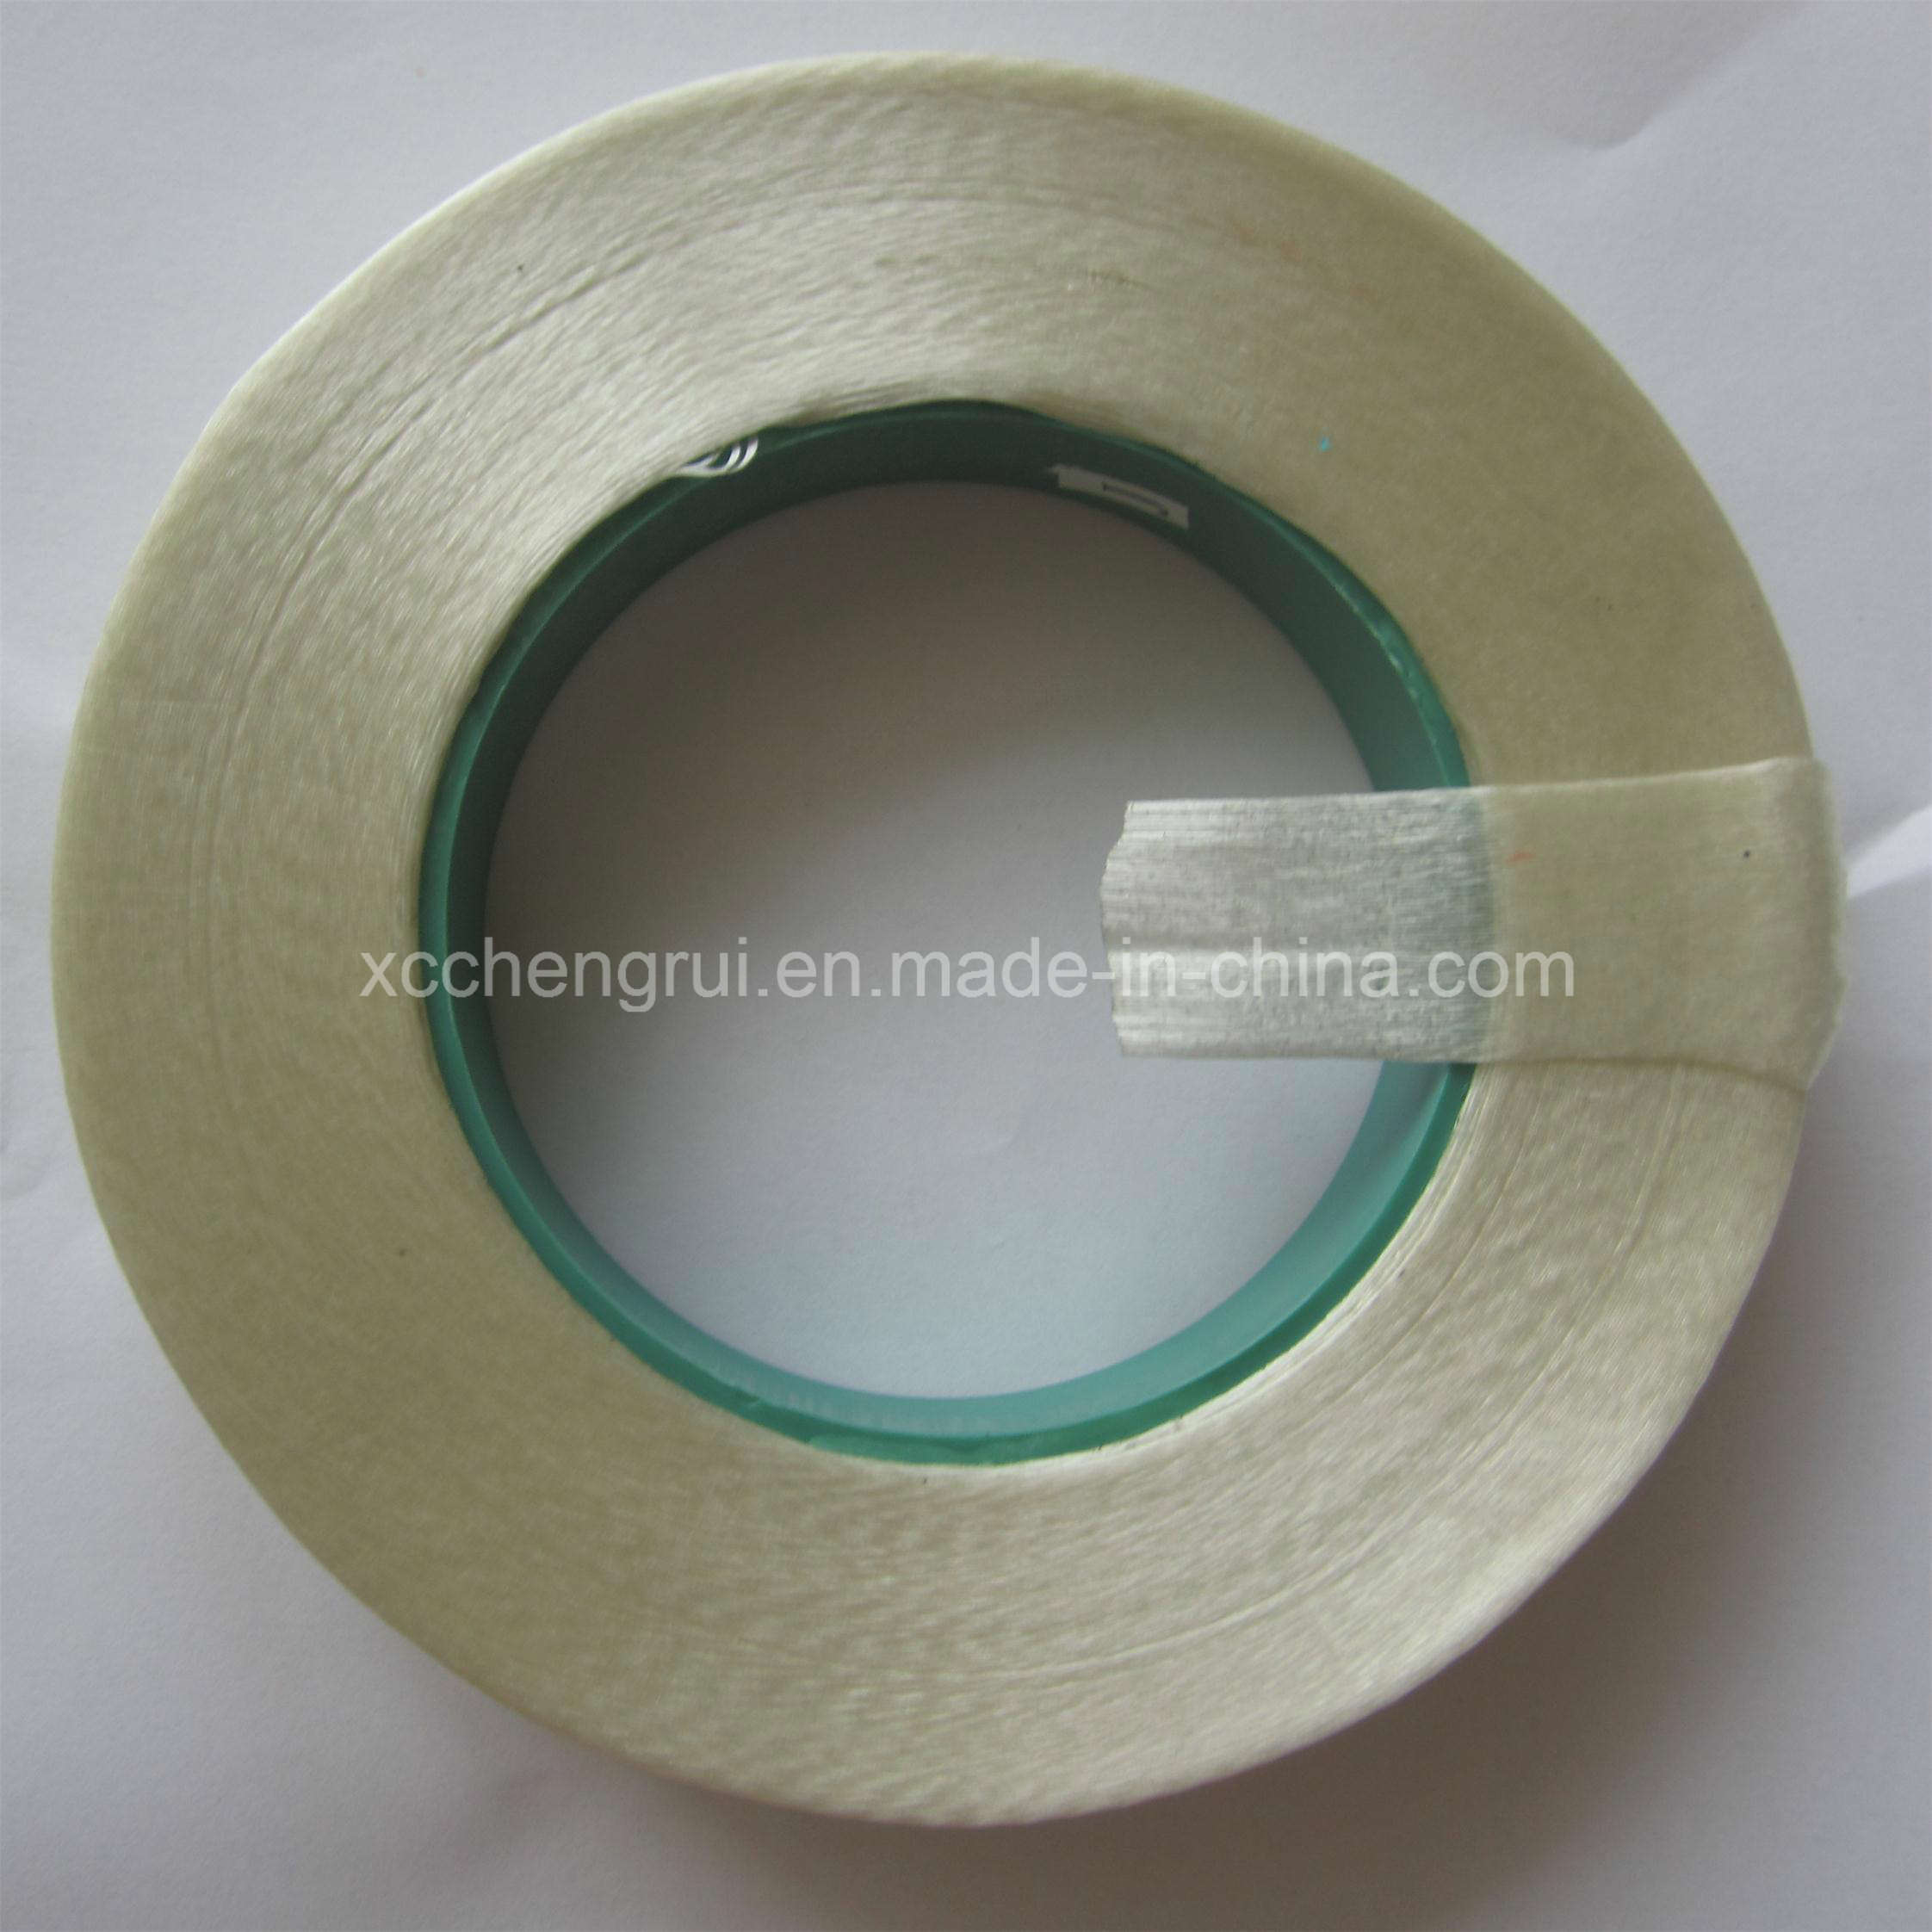 High Quanlity 2830 Polyester Impregnated Insulation Fiberglass Tape